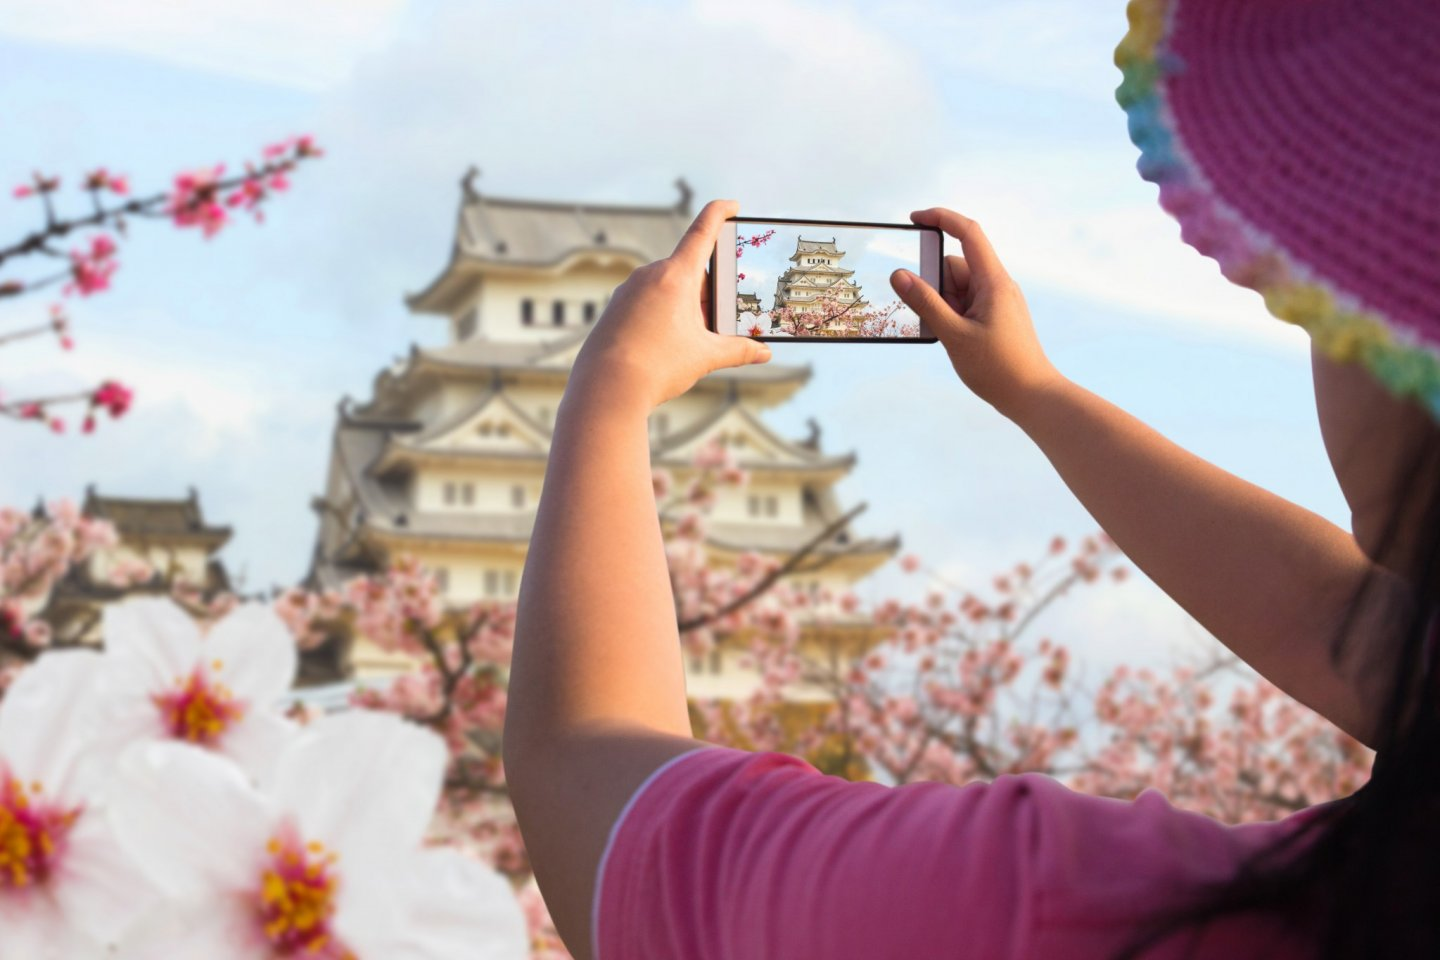 Stay Connected with an IIJmio SIM - Plan your trip - Japan